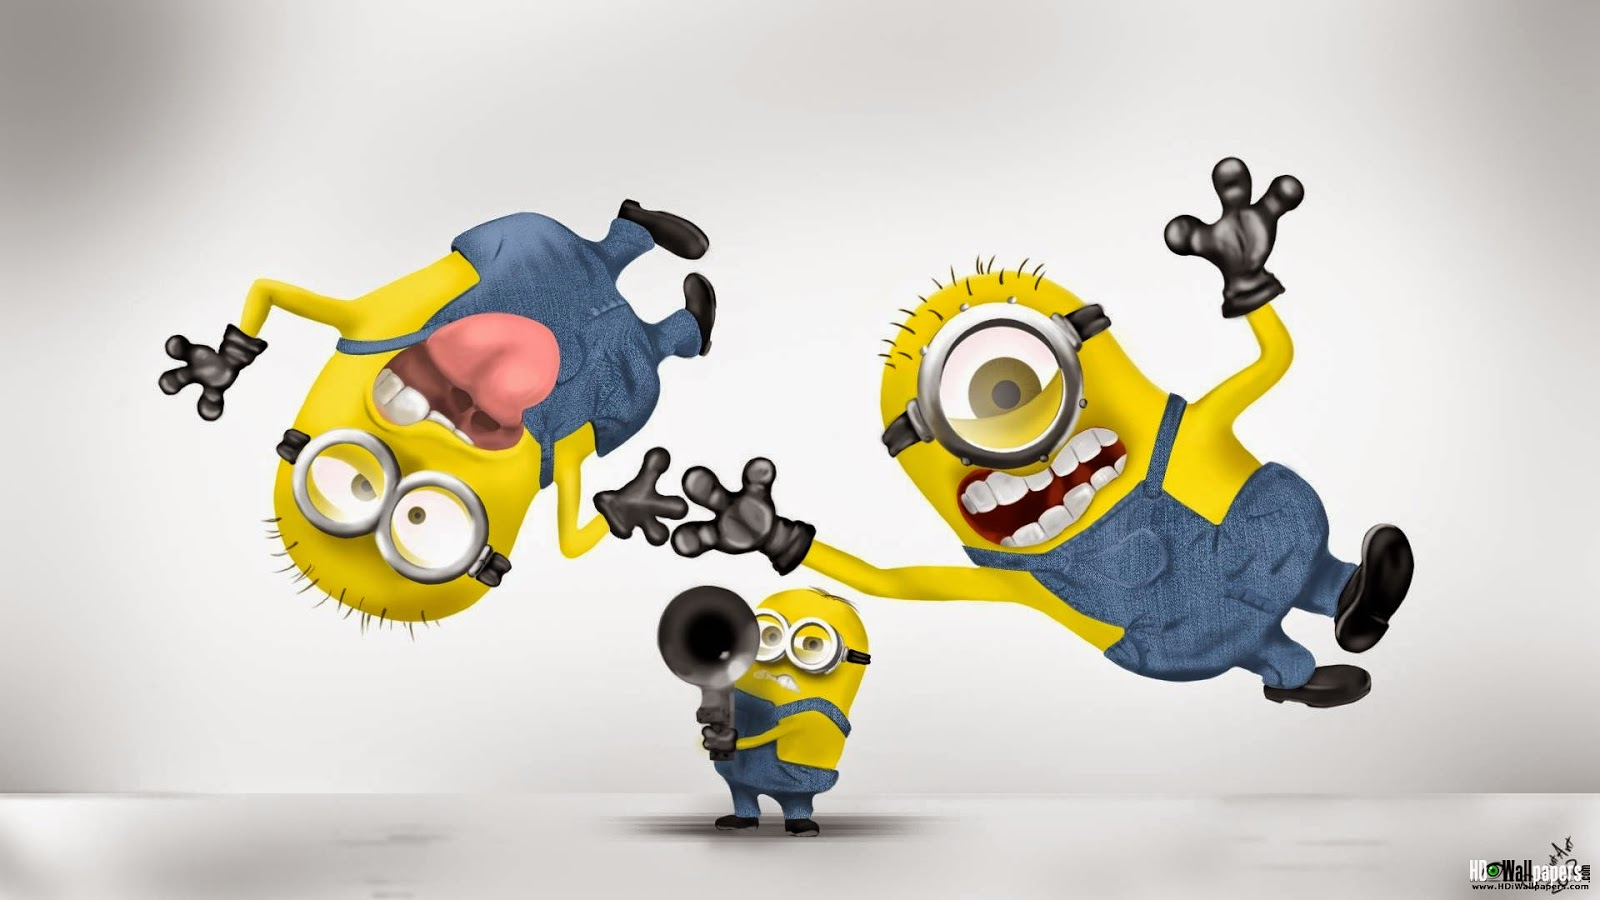 http://gallerycartoon.blogspot.com/2015/03/minions-movie-pictures-4.html